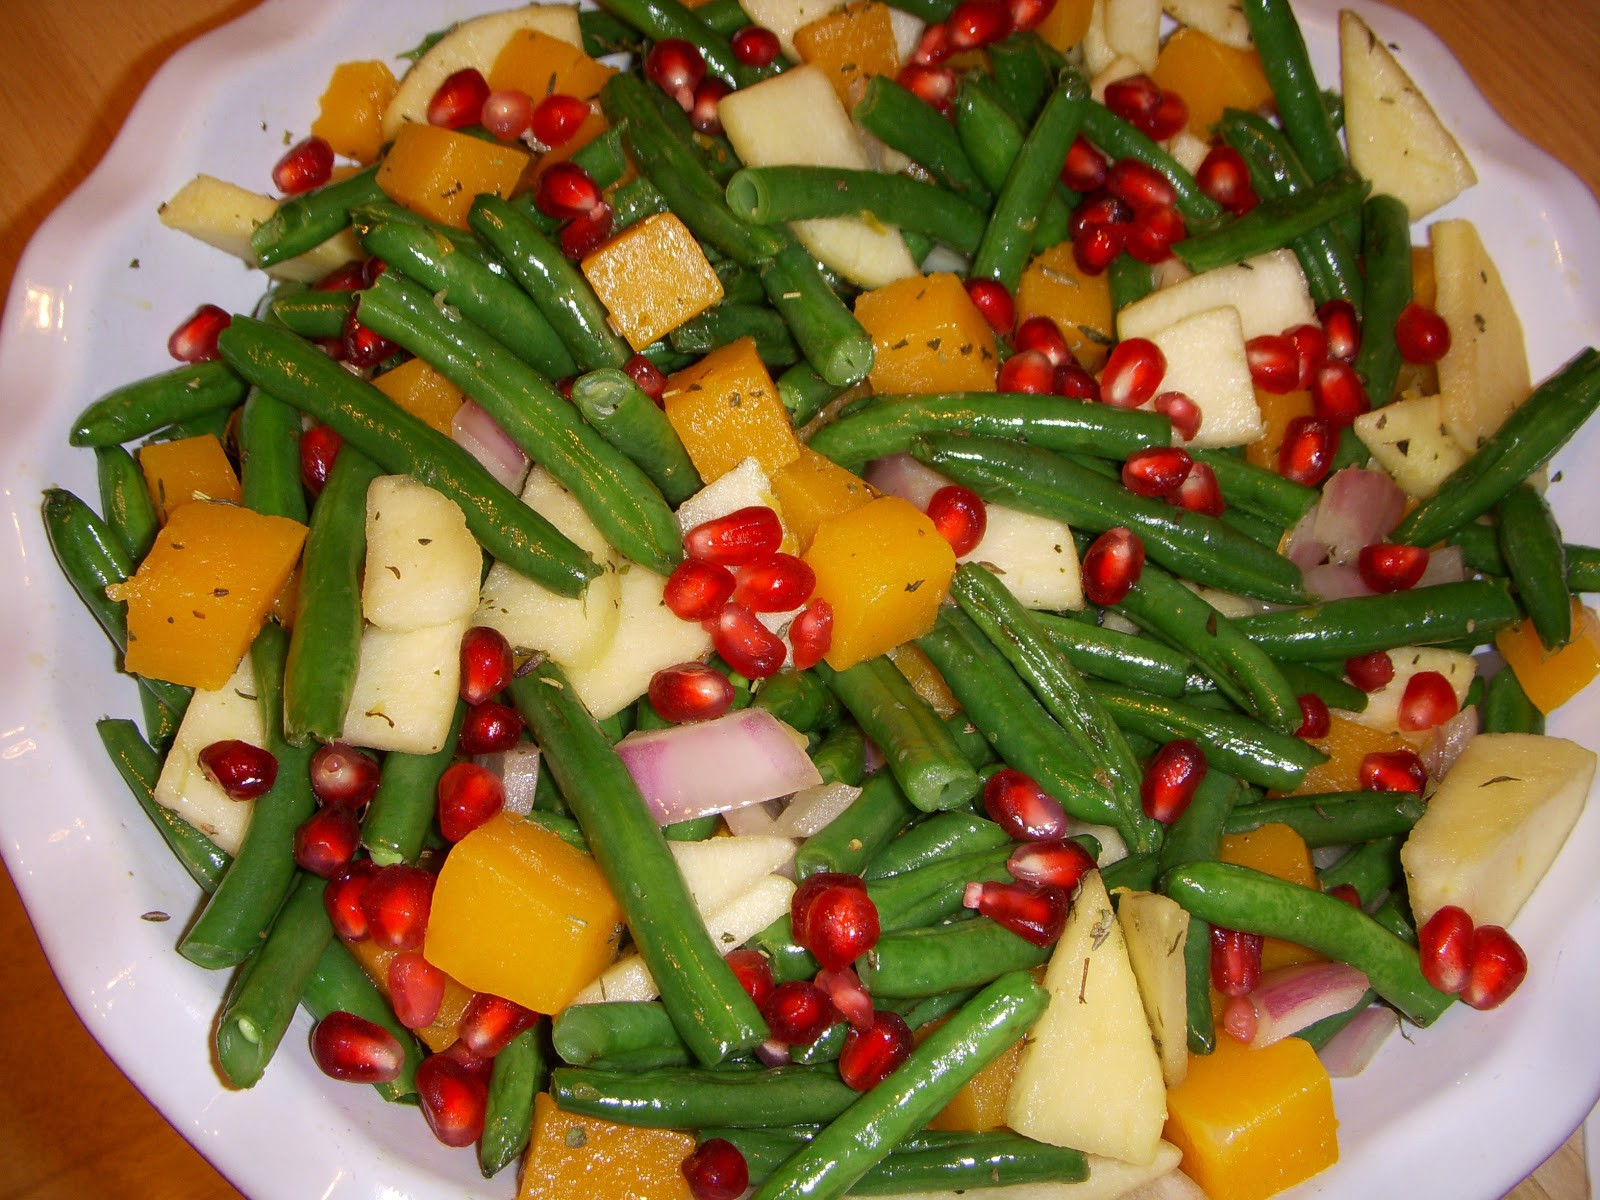 Vegetables Side Dishes For Christmas  You Can t Eat What The Best Side to Fall For